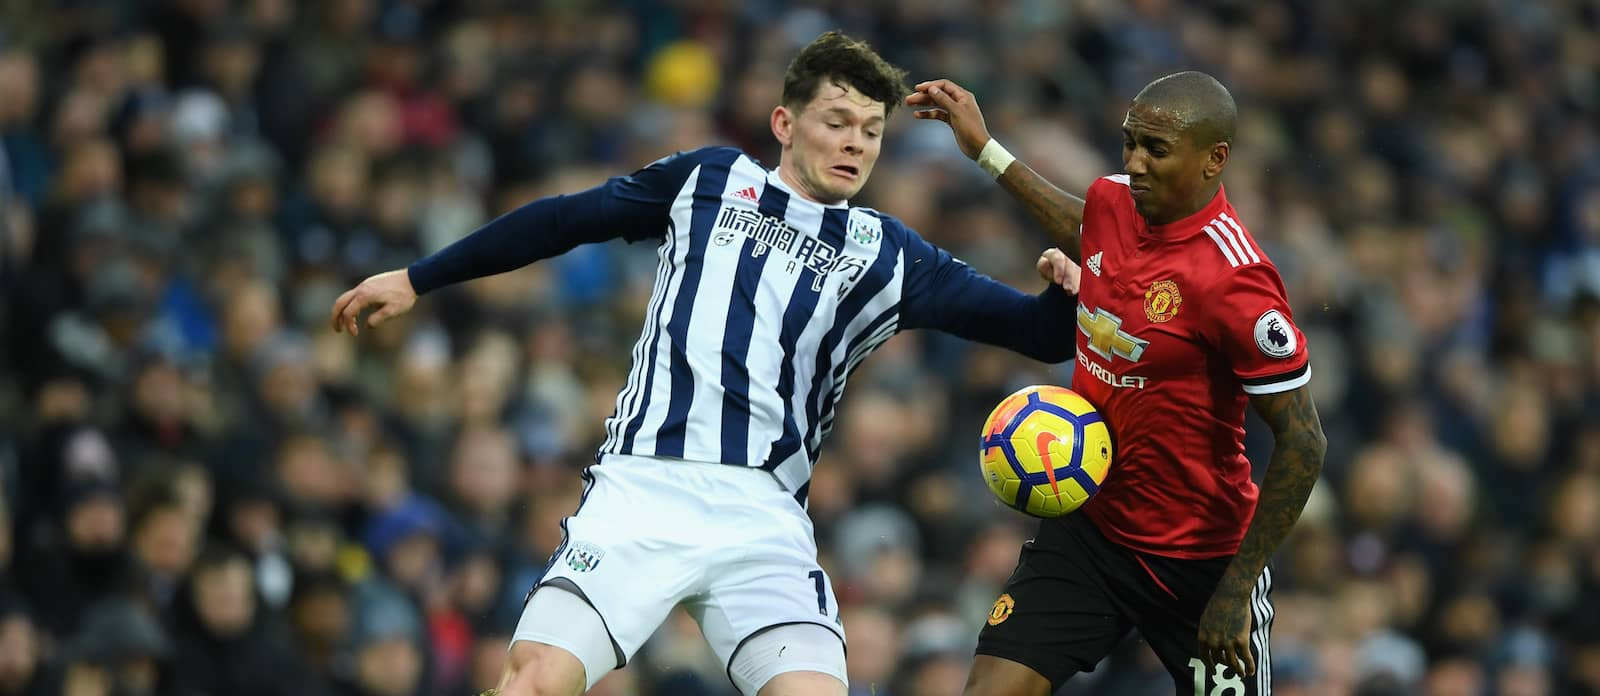 Manchester United's transfer policy heavily criticised by Gary Neville as seven of 11 starters vs West Brom were Fergie-era players